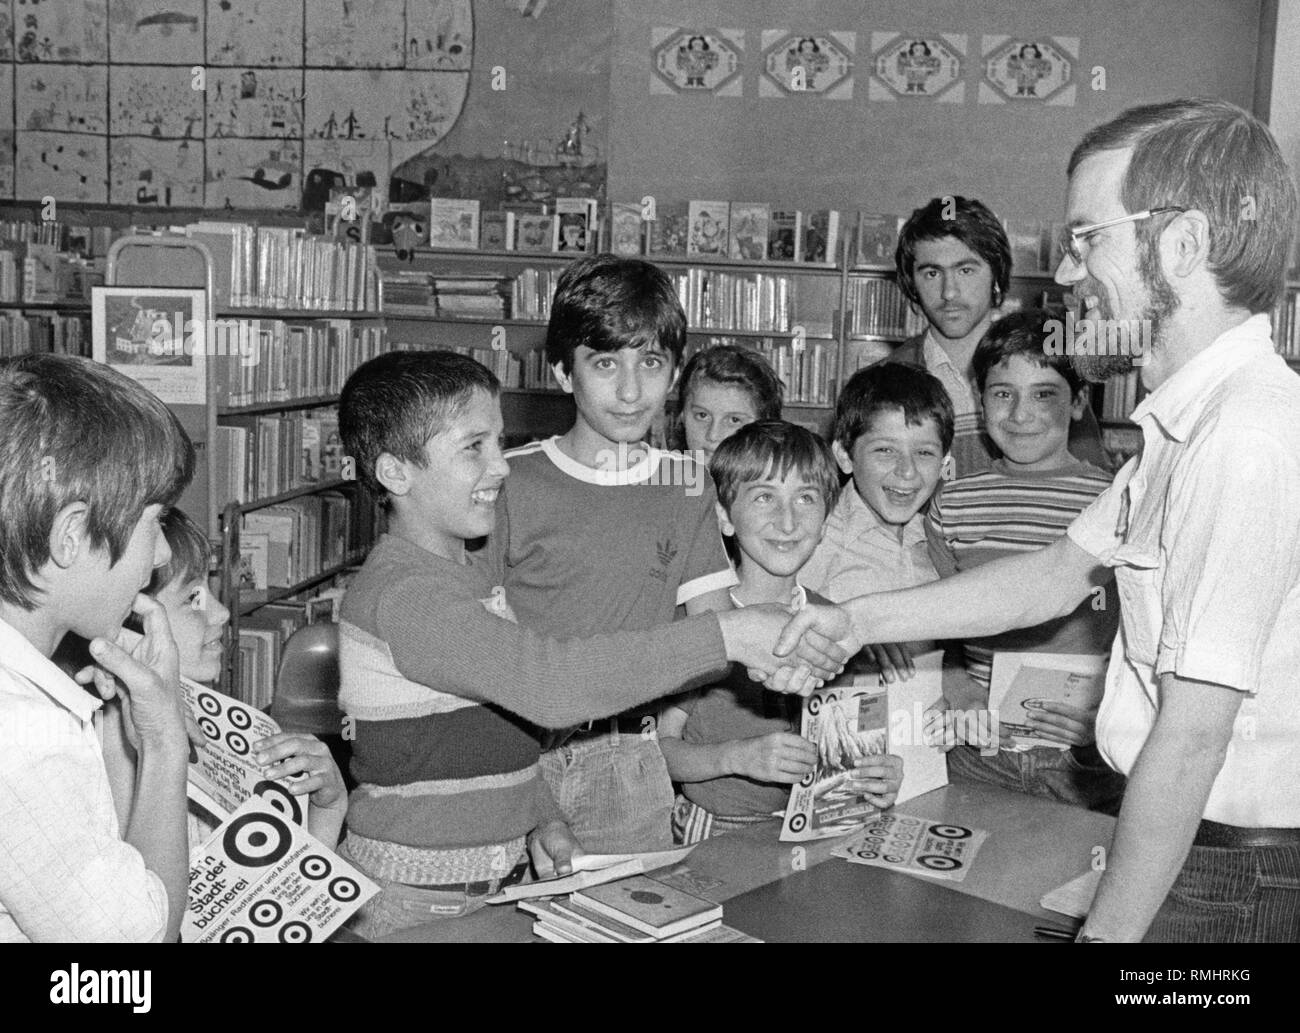 Hans-Peter Laqueur (far right) awards clever Turkish quiz participants at a ceremony at the youth library in Munich-Haidhausen (around 1980).  With the help of a children's non-fiction book,  previously the puzzlers had to answer 15 tricky questions. - Stock Image